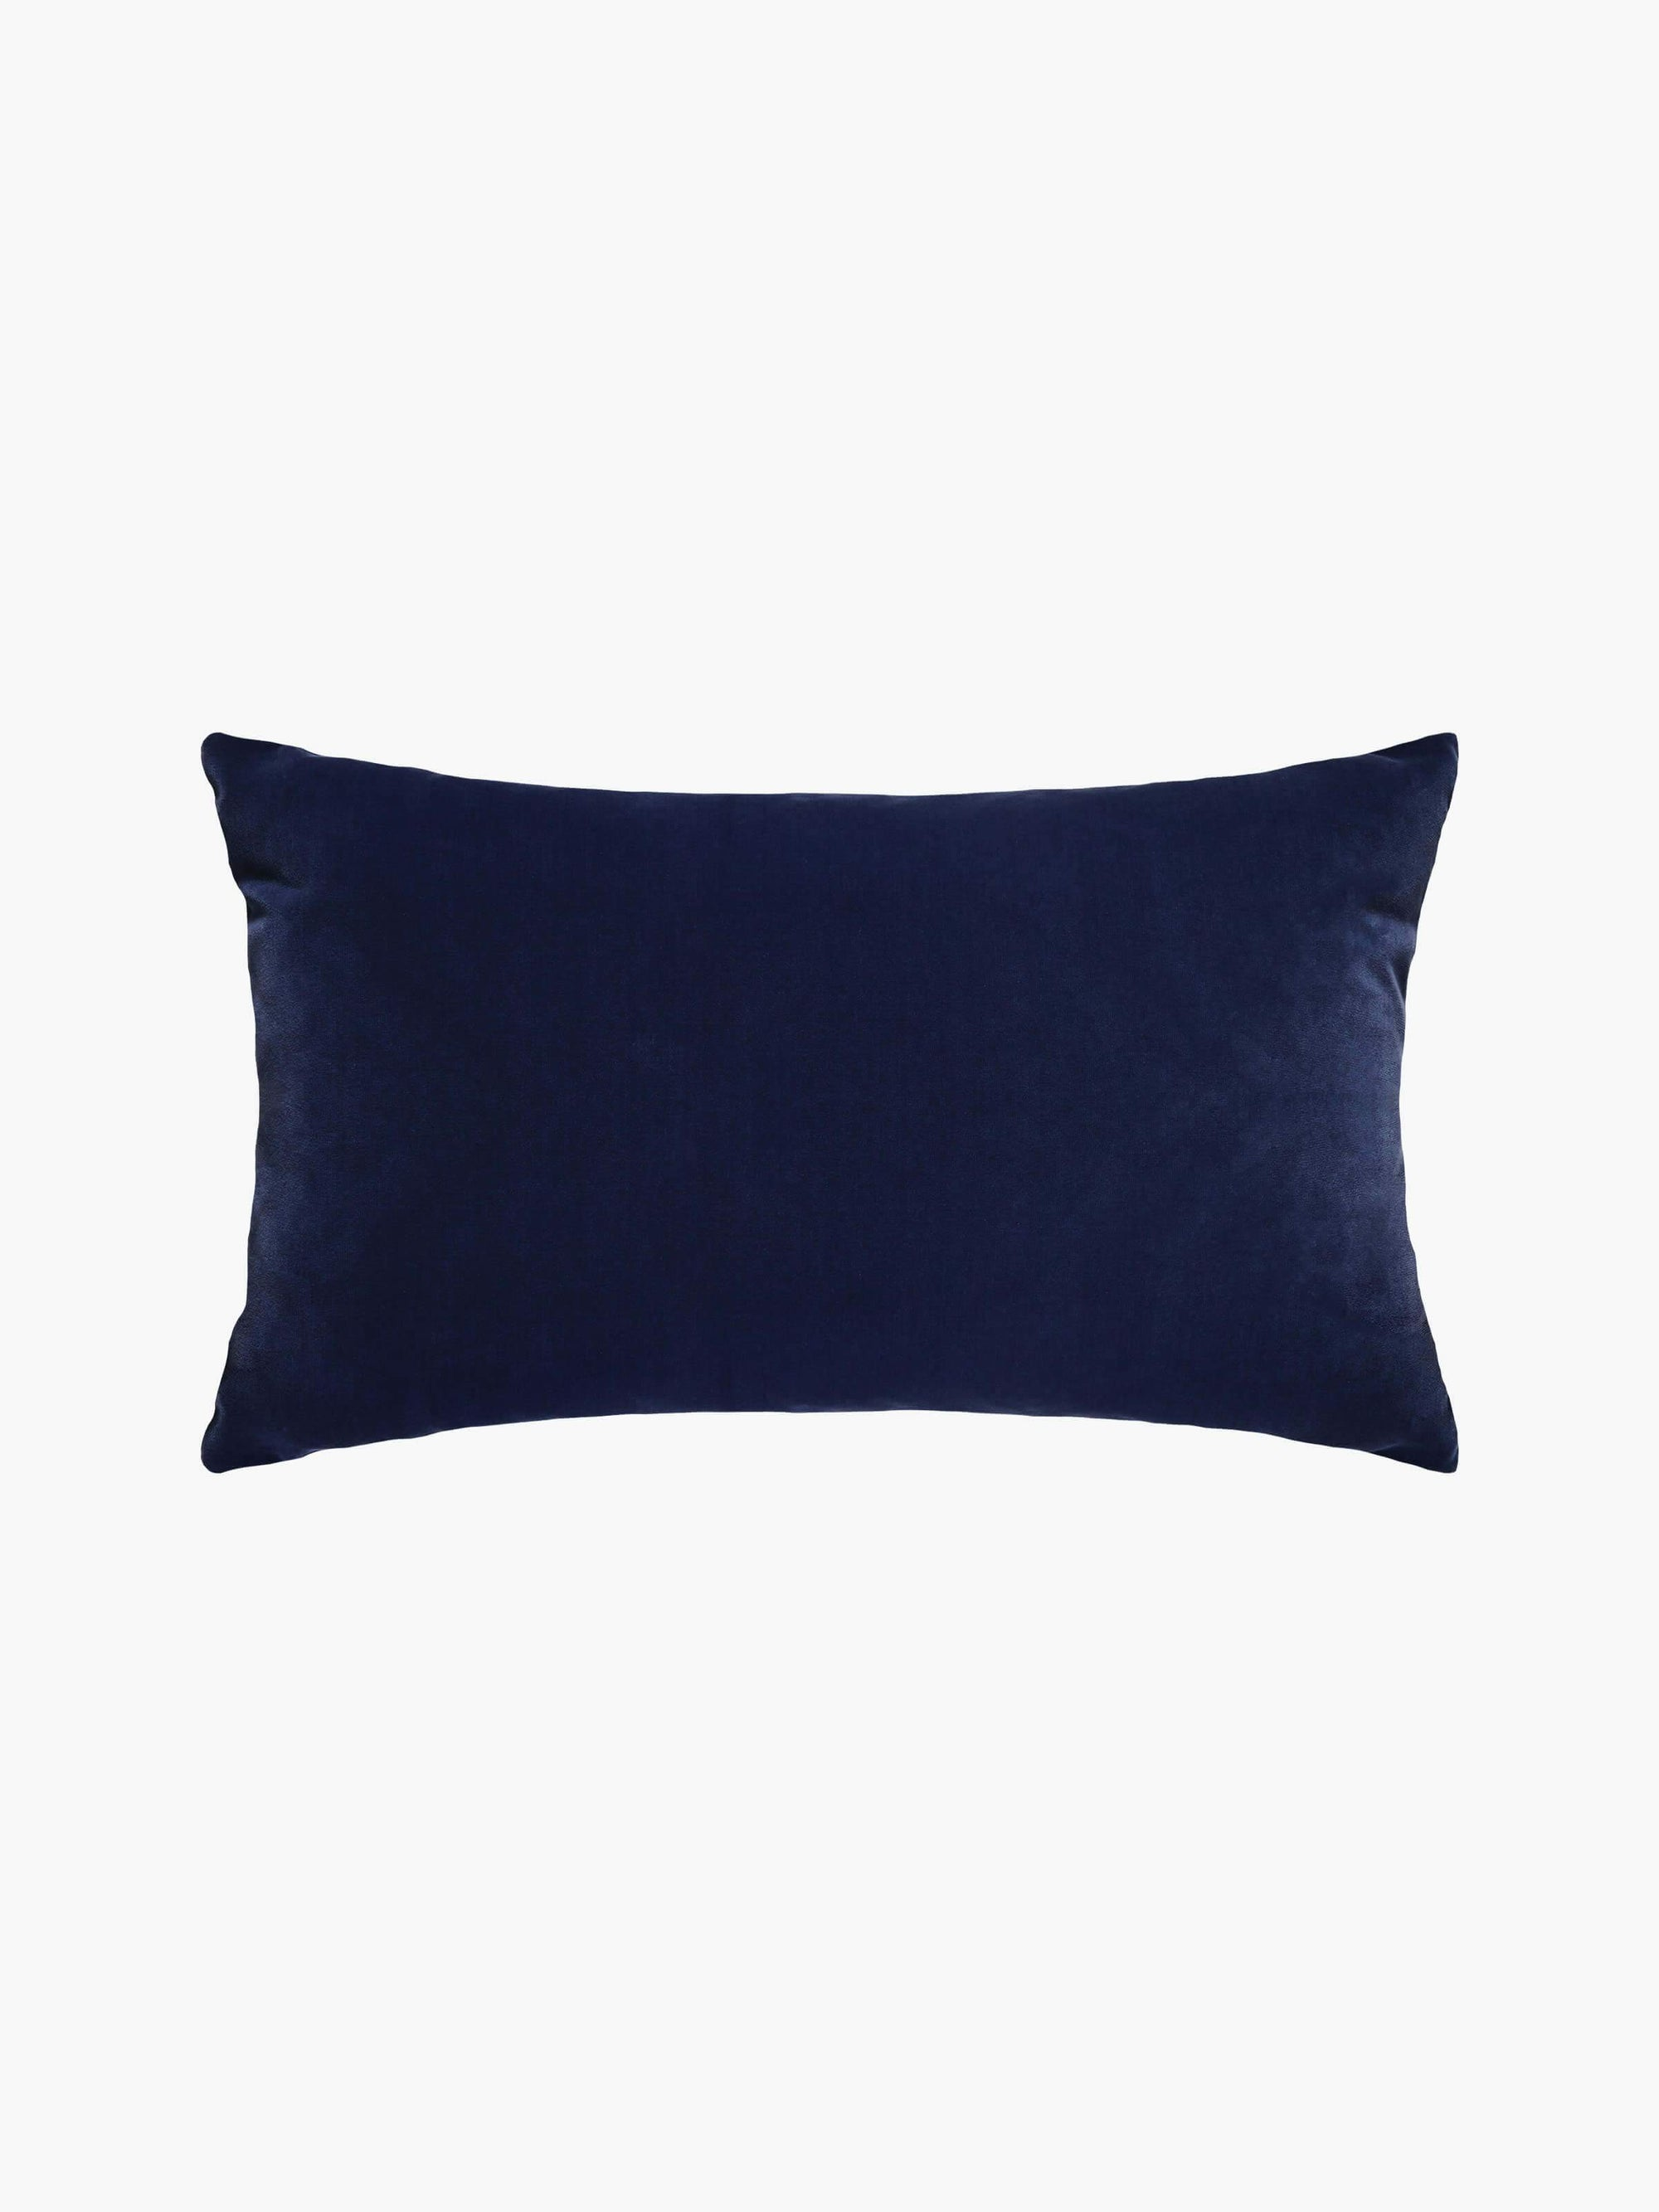 Etro Indigo Mini Cushion Cushion 2020